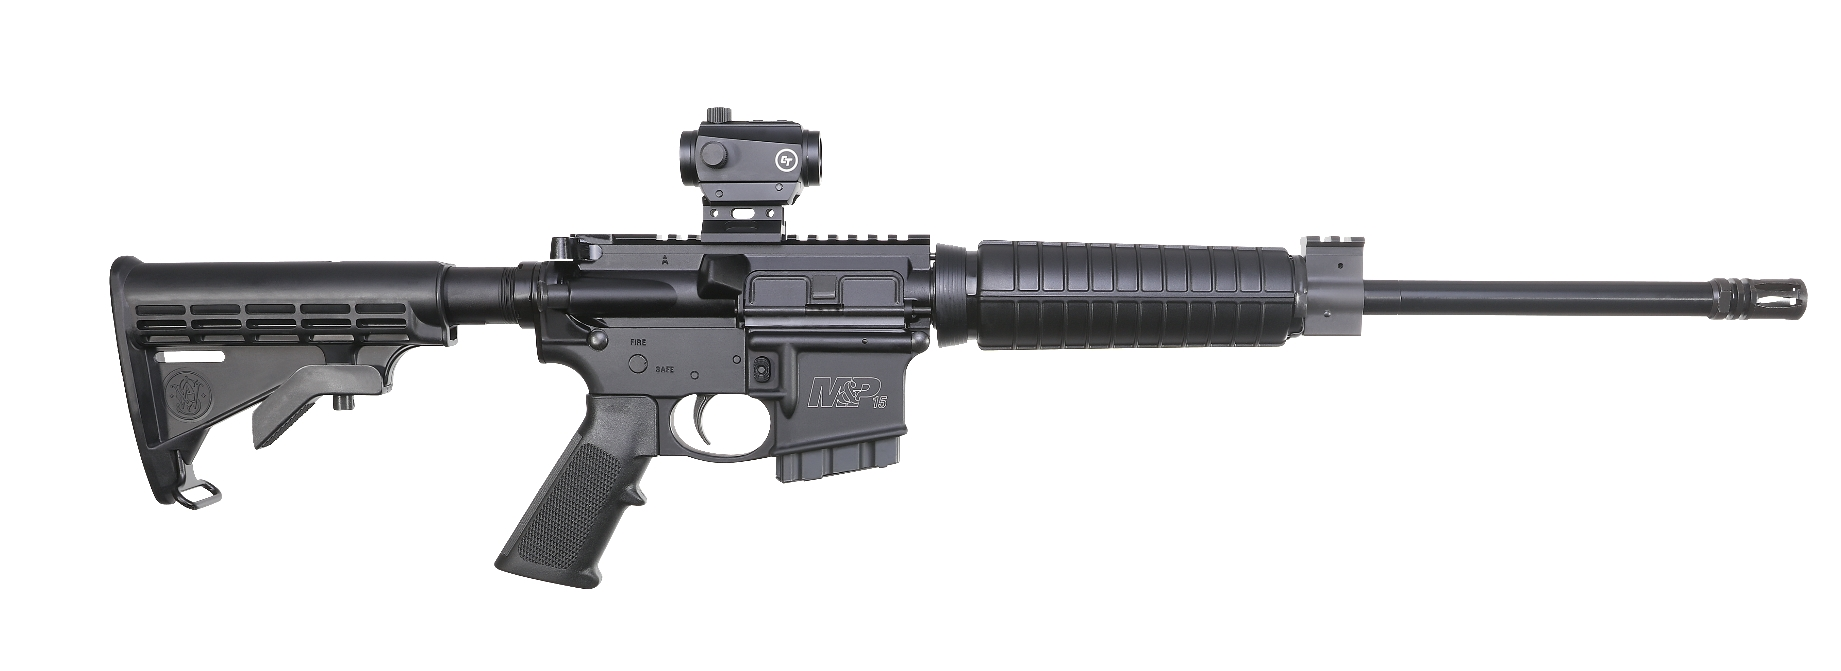 Smith and Wesson M&P15 Sport II OR 223 Rem | 5.56 NATO